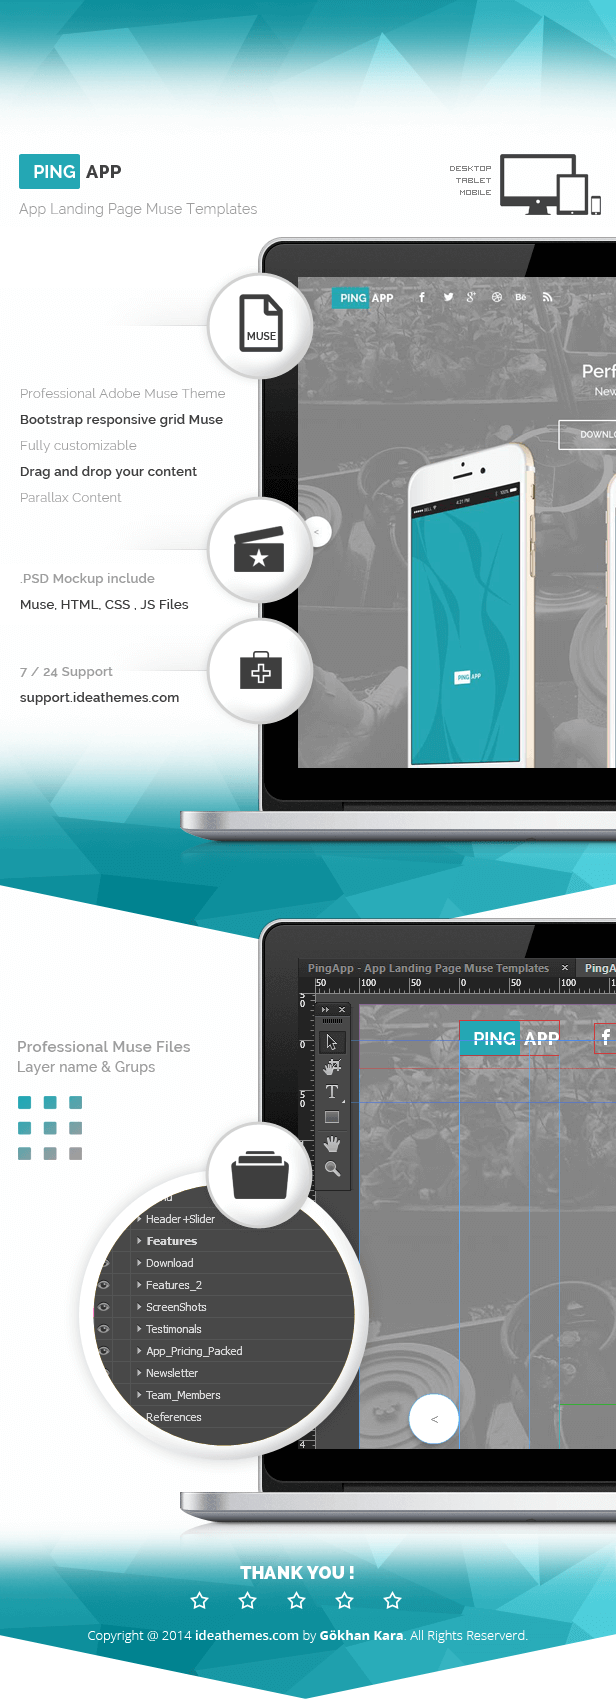 PingApp One Page Parallax Muse Theme First page